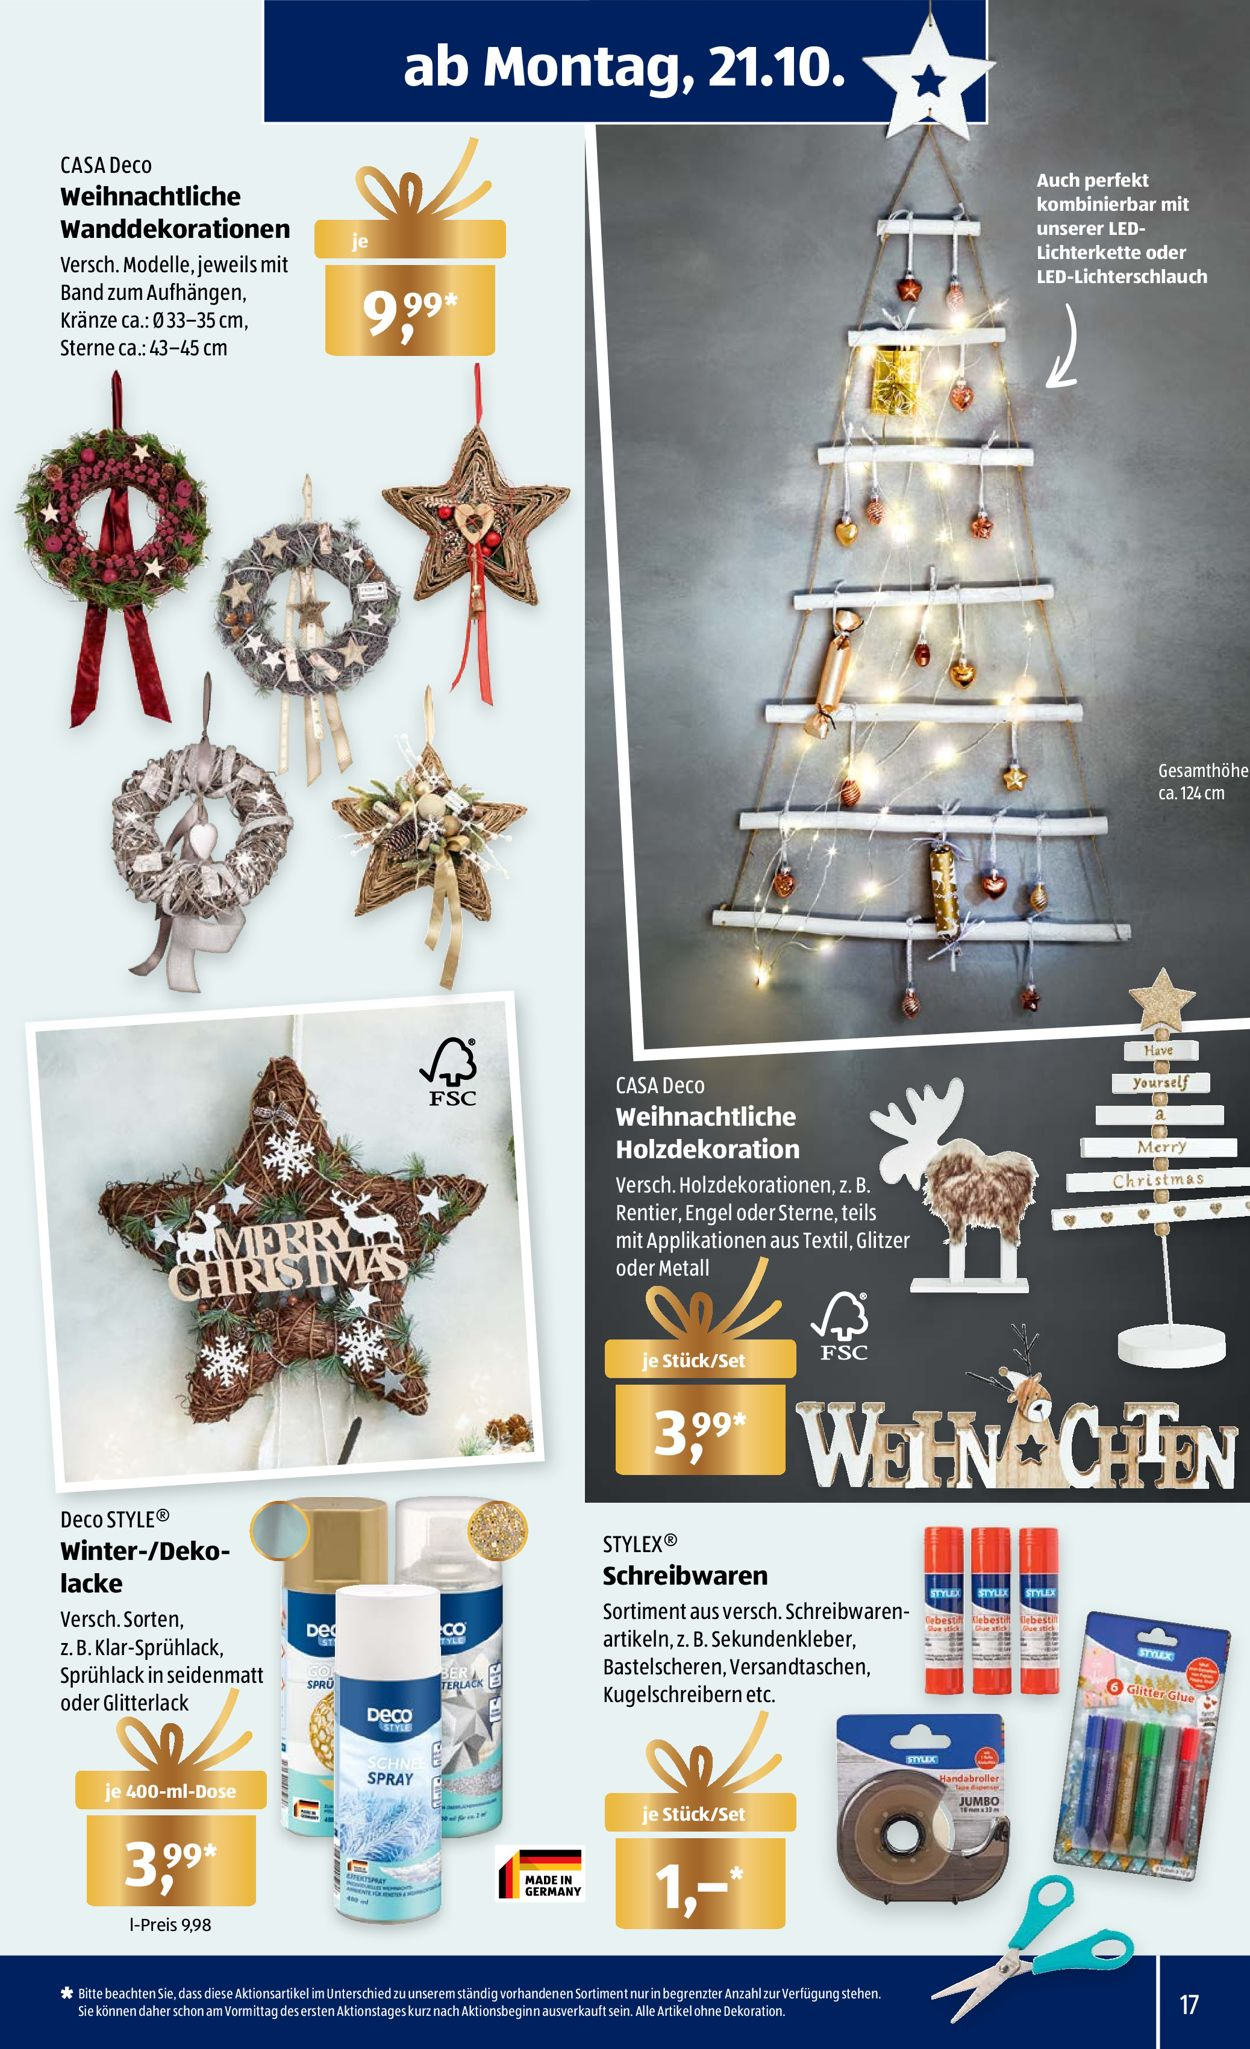 Led Weihnachtsbaumbeleuchtung Aldi Caseconrad Com